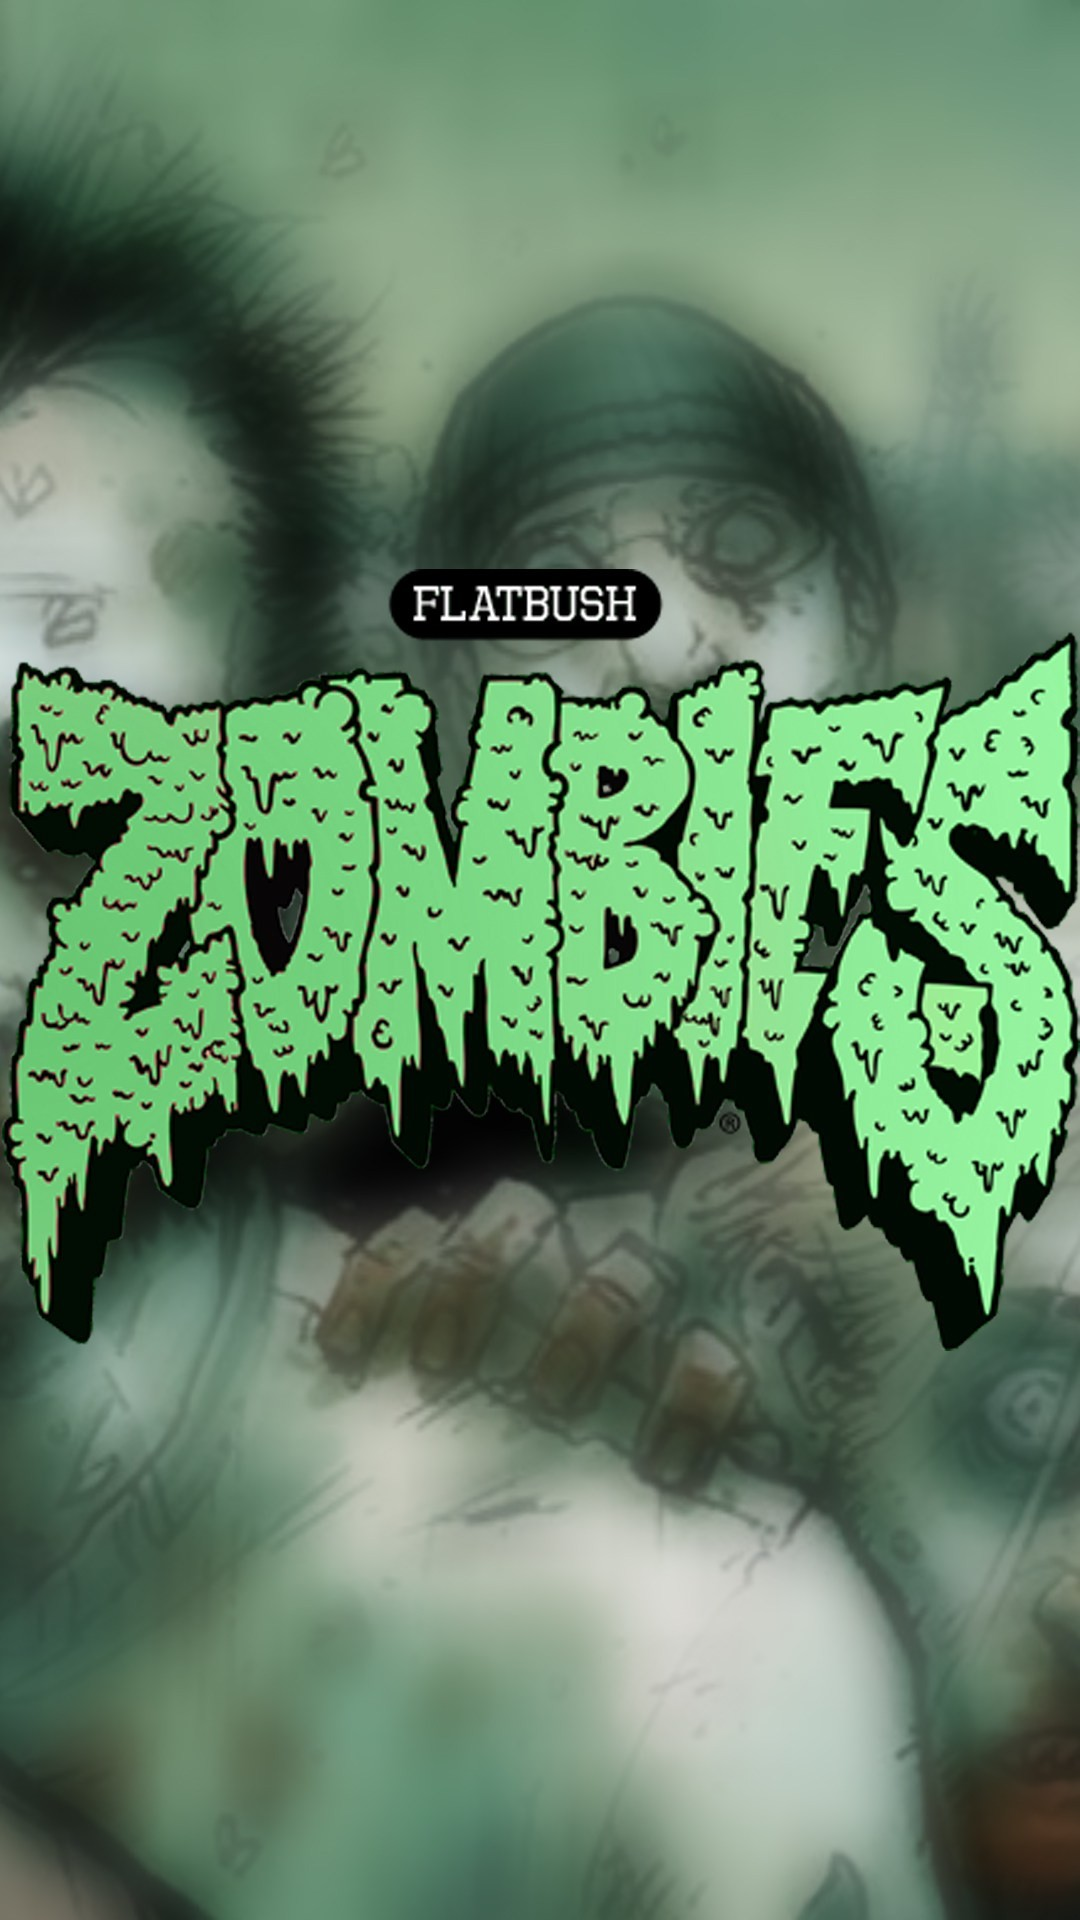 … Perfect QdiTHJ Flatbush Zombies Wallpaper And Flatbush Zombies  Wallpaper Flatbush Zombies Wallpaper Beautiful Hd Wallpapers For